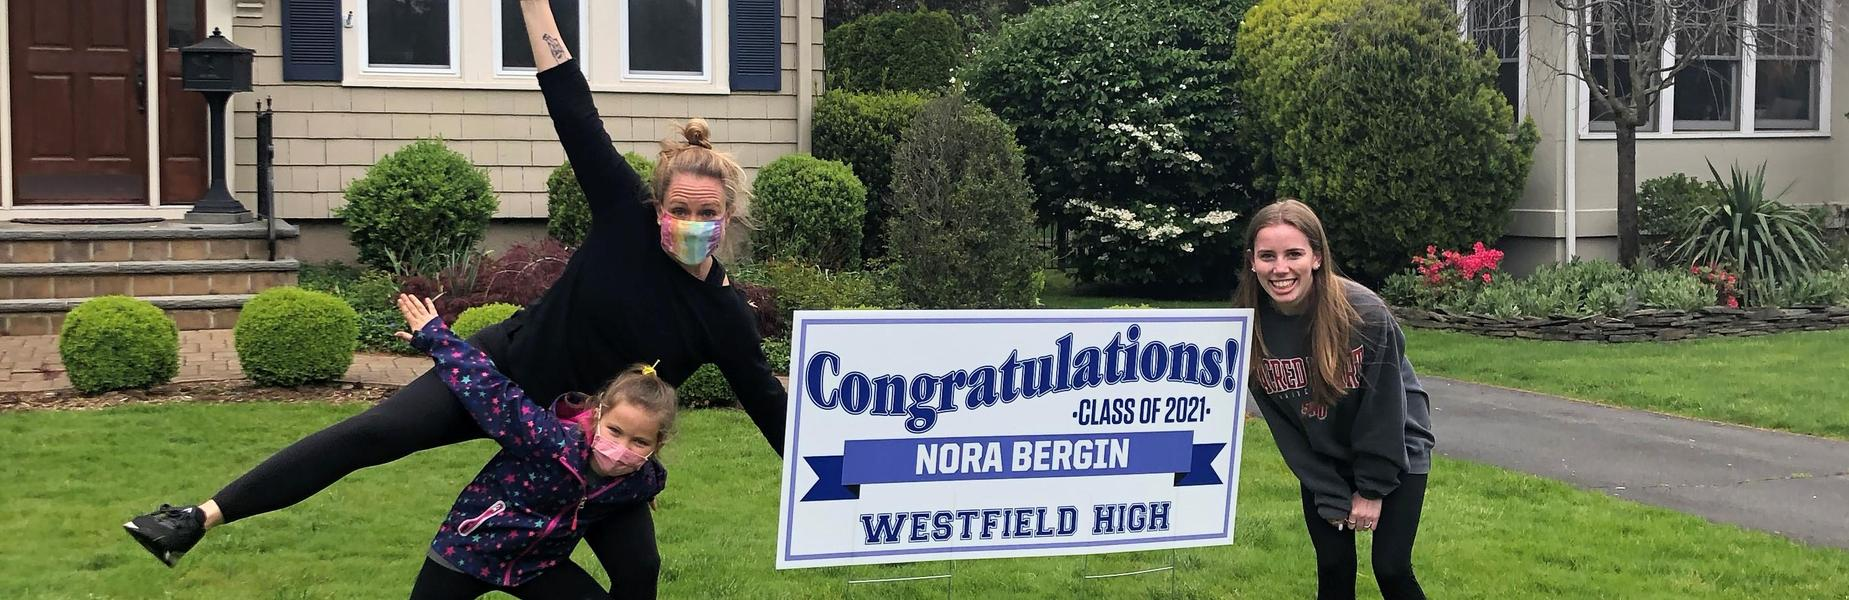 Photo of WHS 12th grader posing with lawn sign and teacher with child